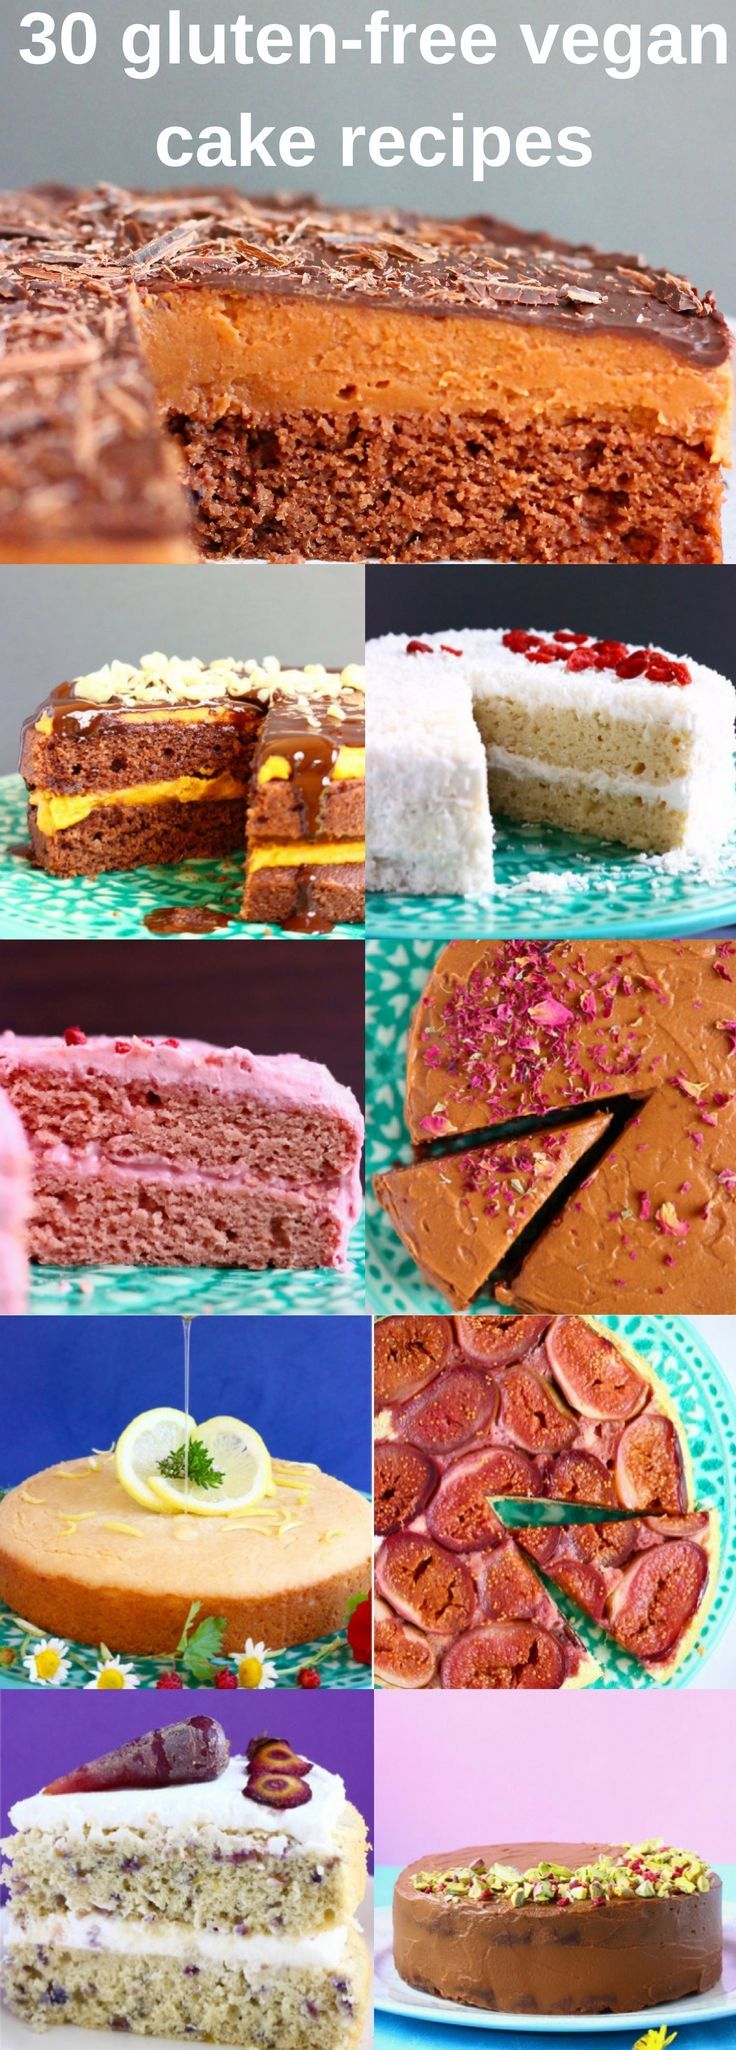 30 Vegan Gluten-Free Cake Recipes! A range of sponge cakes made with fruits (lemon, orange, pineapple, strawberry, blueberry, figs); decadent chocolate cakes (peanut butter chocolate cake, chocolate truffle cake, chocolate mousse cake); others like coconut cake, coffee cake and red velvet cake. Perfect for birthdays. All refined sugar free. #glutenfree #dairyfree #vegan #chocolate #cake #birthday